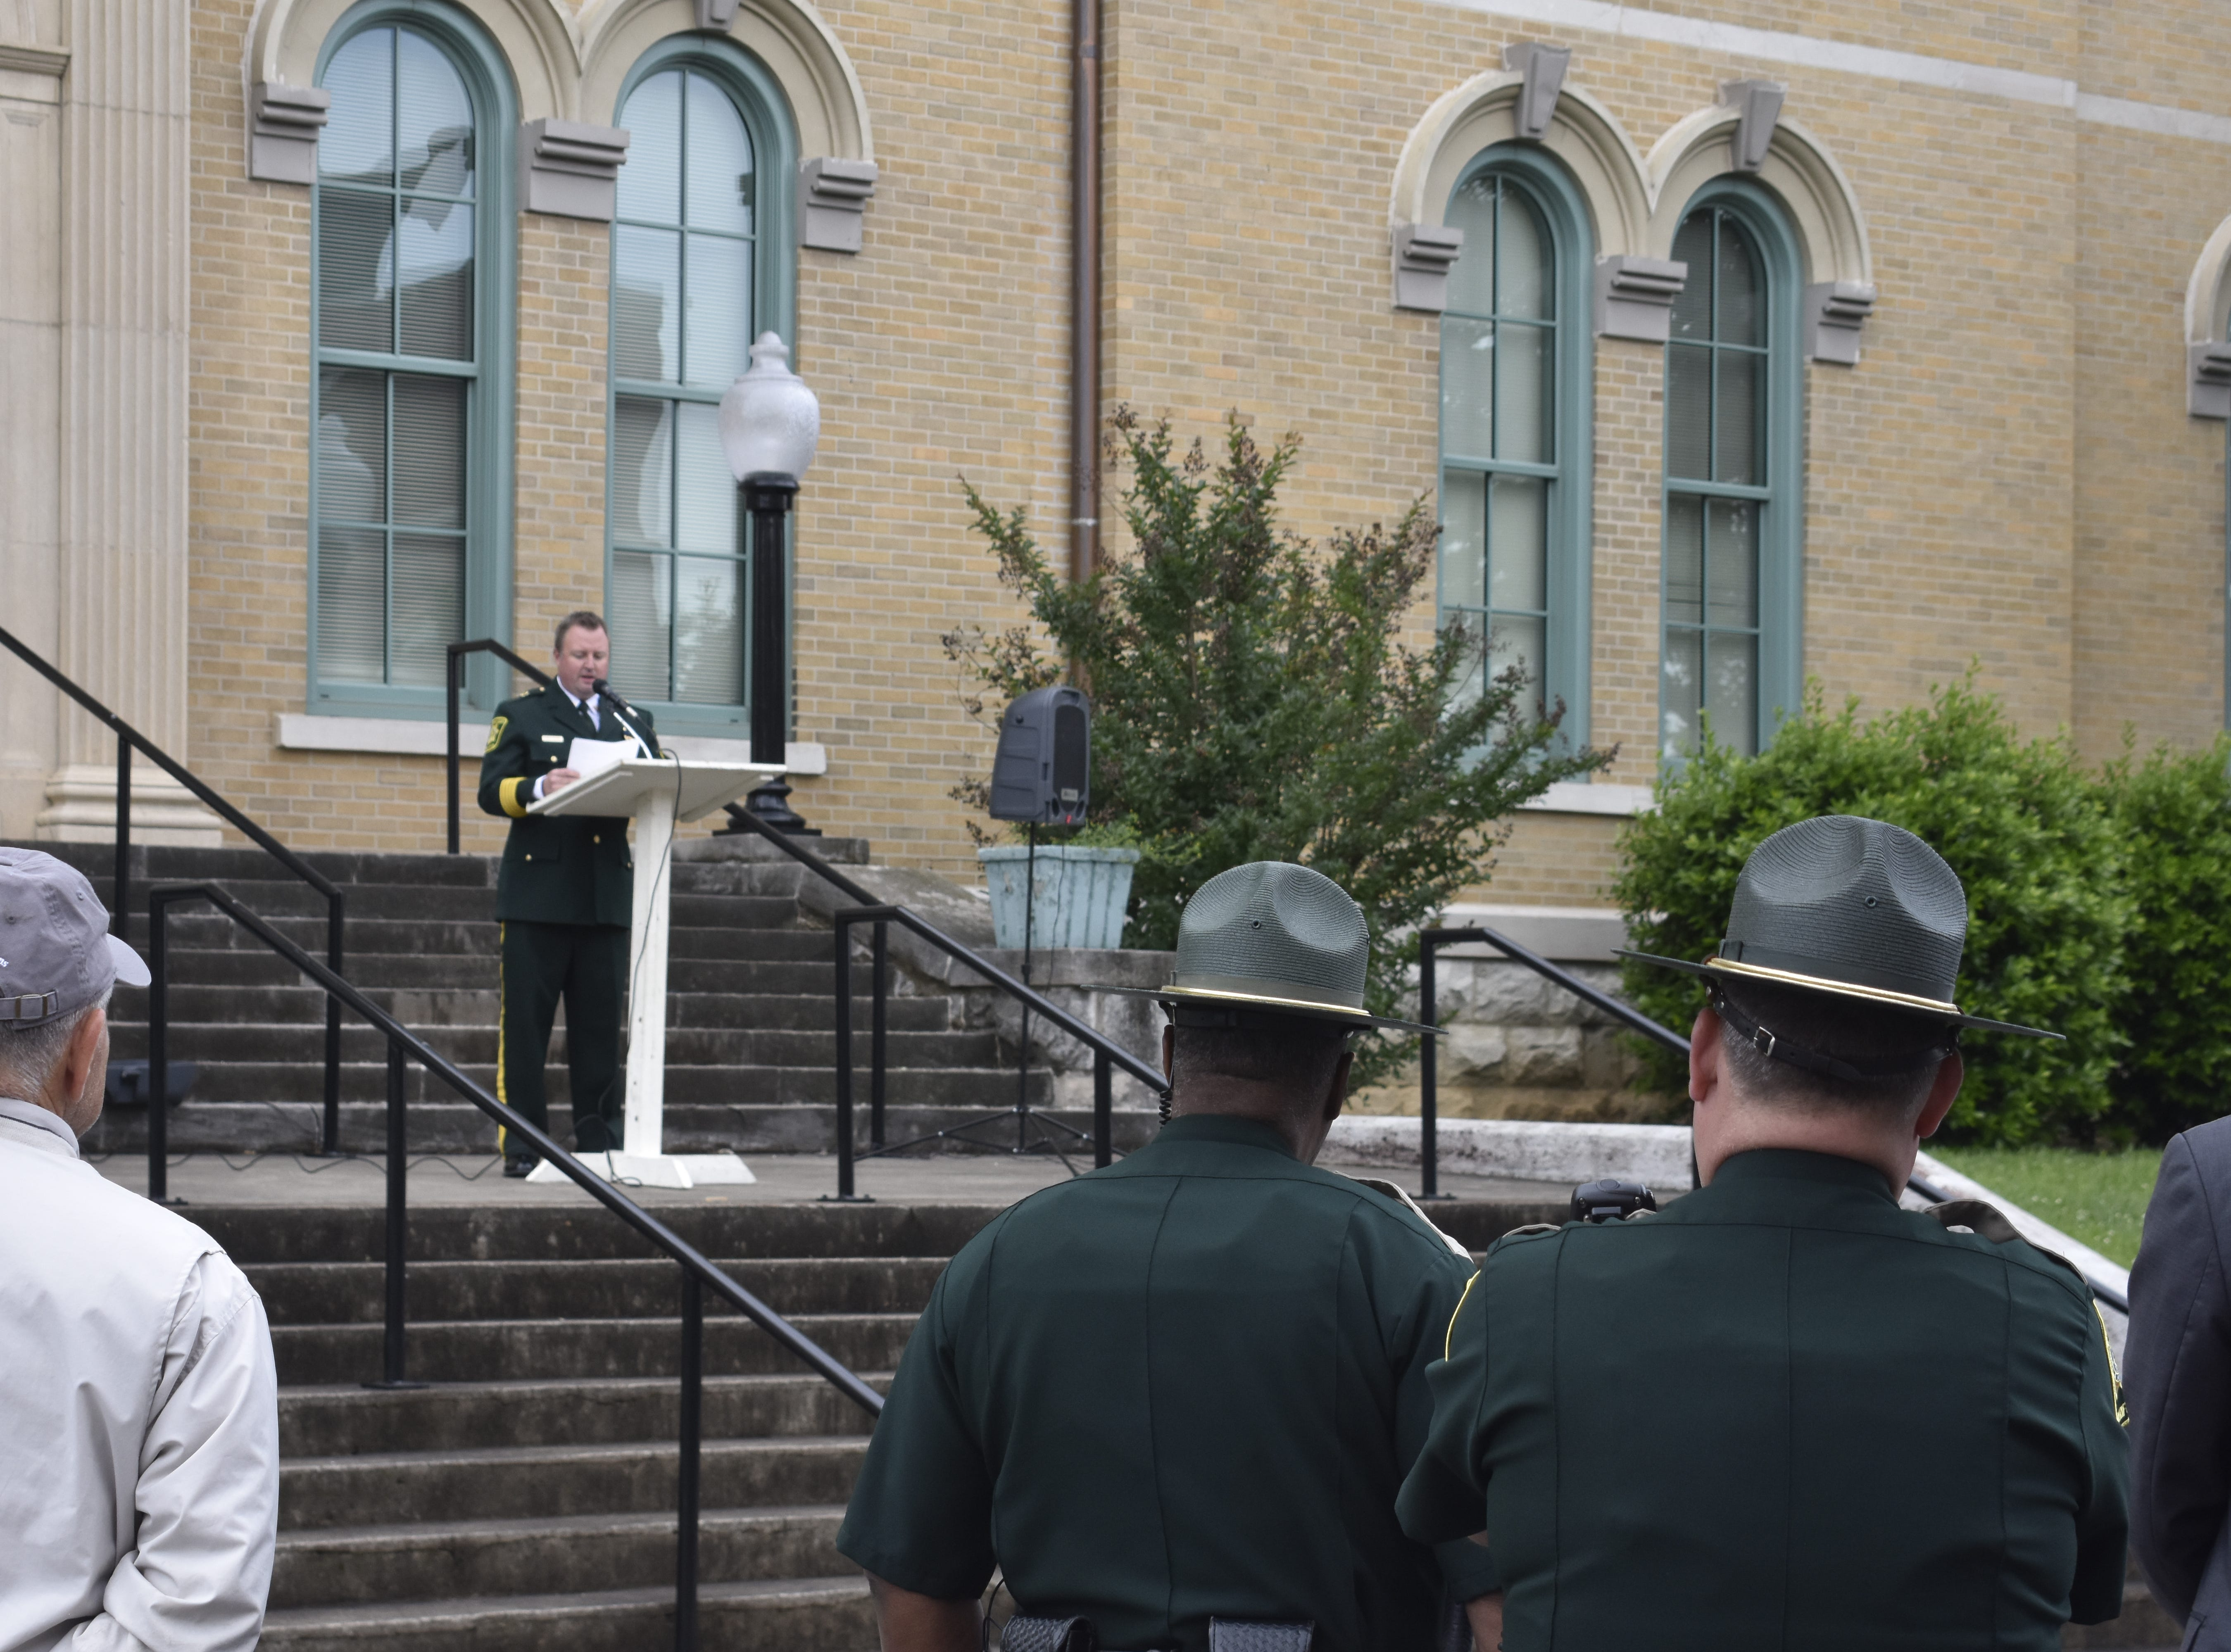 Robertson County Sheriff Mike Van Dyke speaks at the county's annual law enforcement memorial ceremony, coinciding with National Police Week, on Wednesday, May 15.